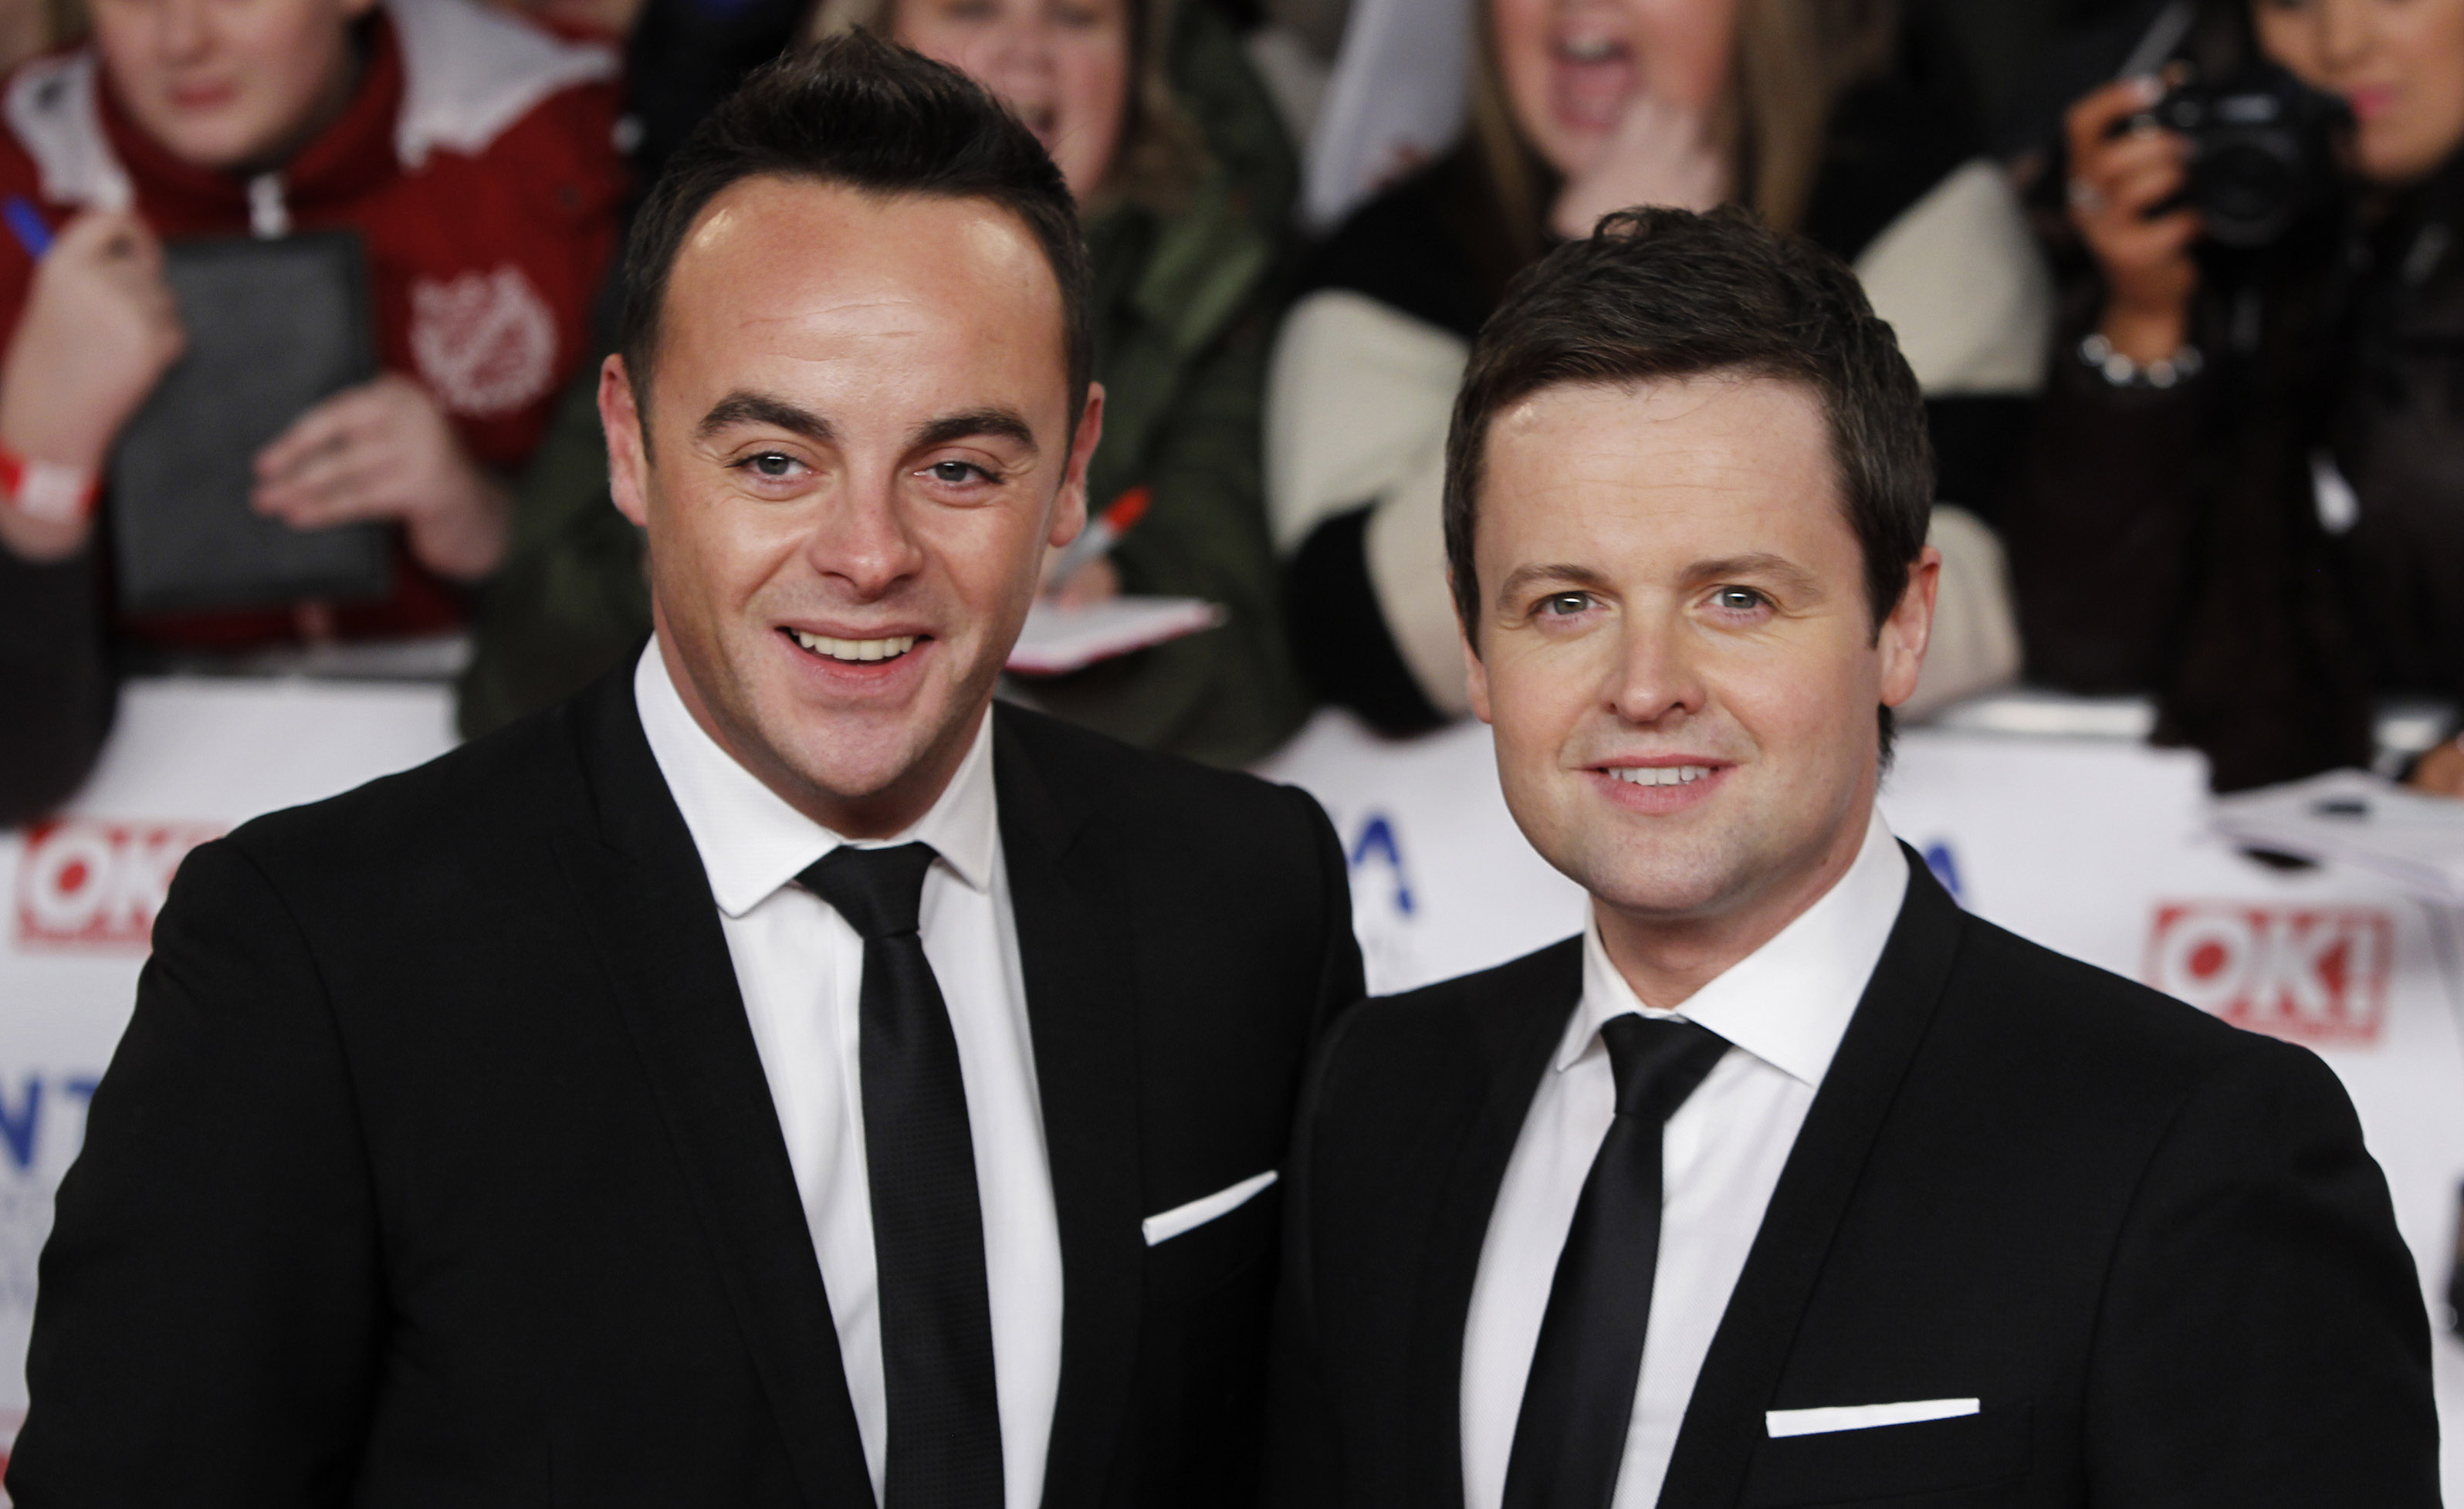 Ant and Dec arrive for the National Television Awards at the 02 Arena in east London, Wednesday, Jan. 25, 2012. (AP Photo/Joel Ryan)